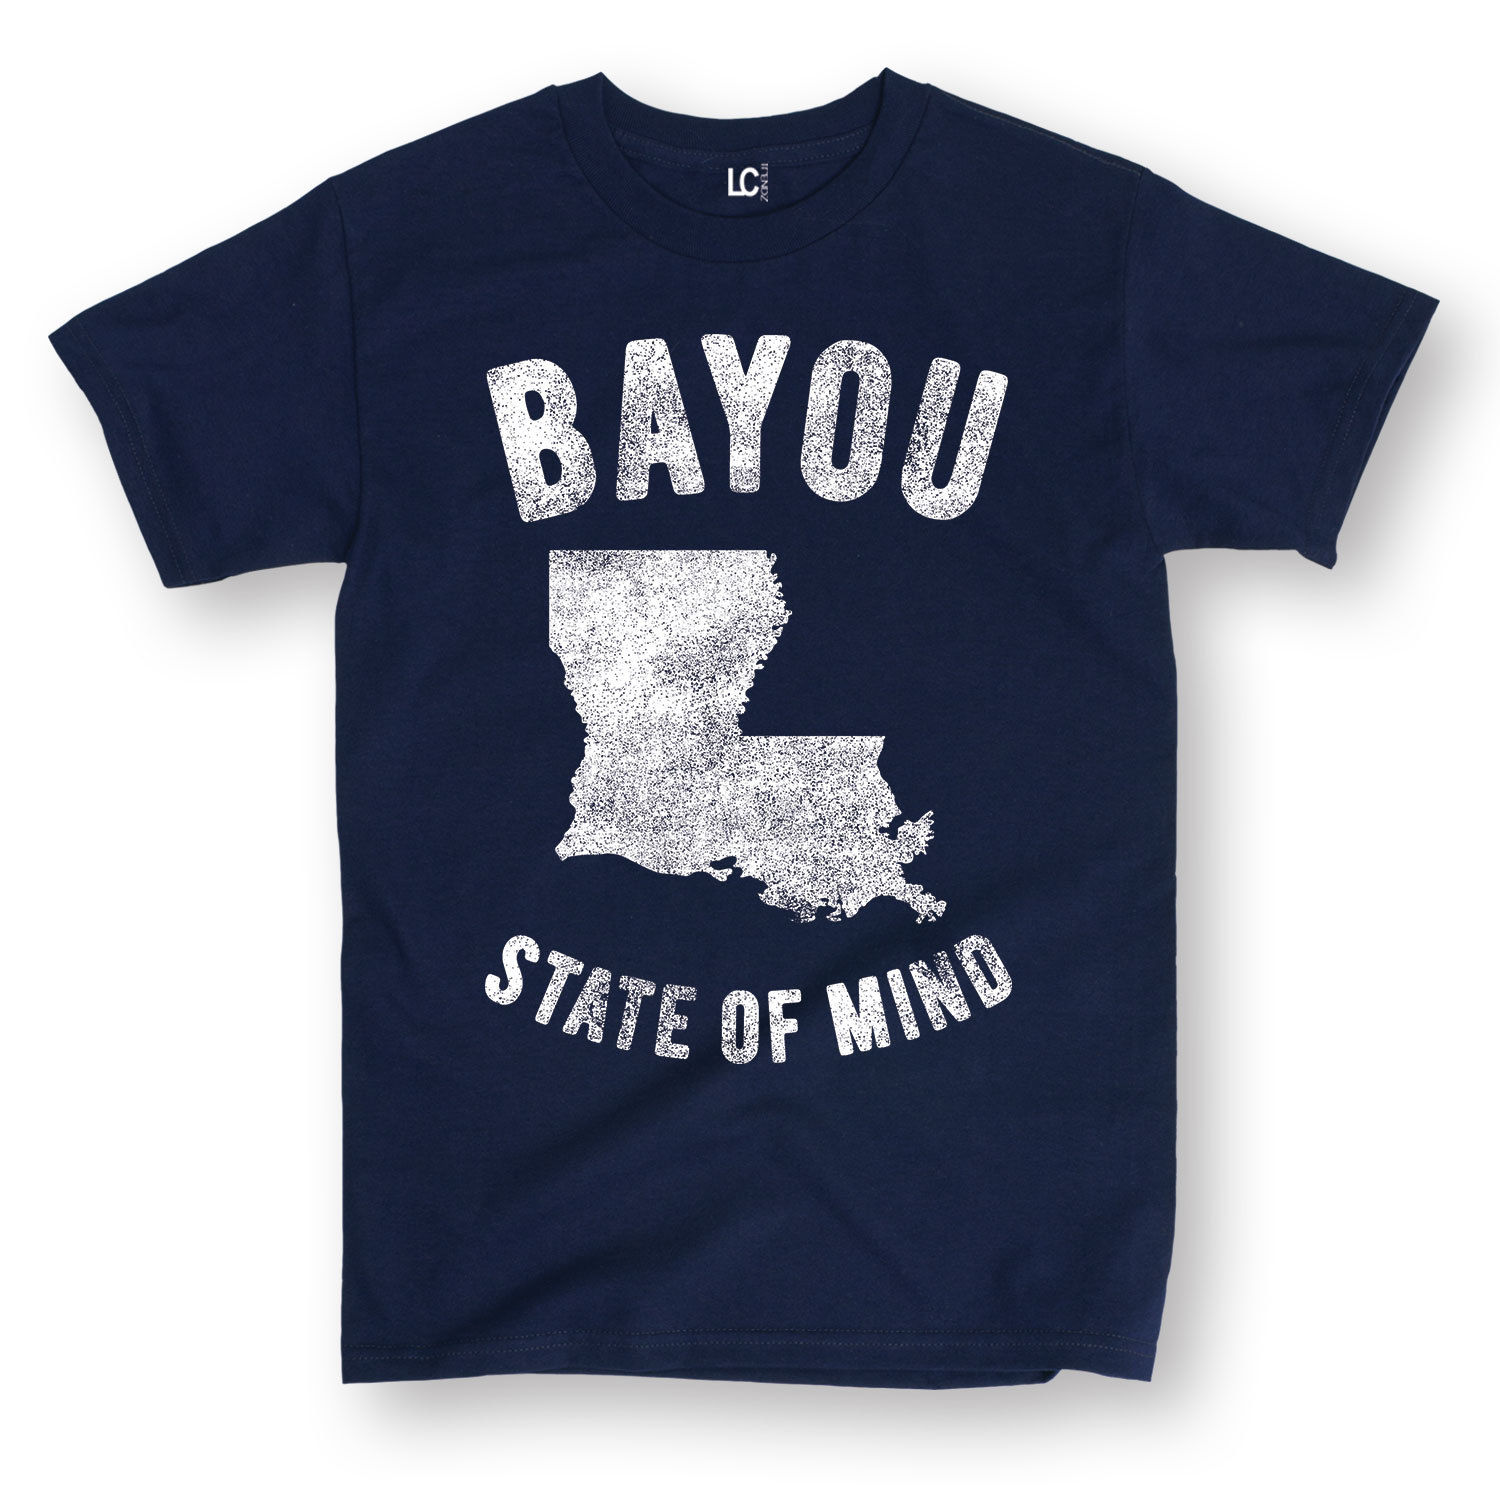 Hot 2019 Men'S Fashion Print T-Shirt Summer Style Bayou State of Mind Lousiana La New Orleans Creole Cajun Sporter T Shirts image